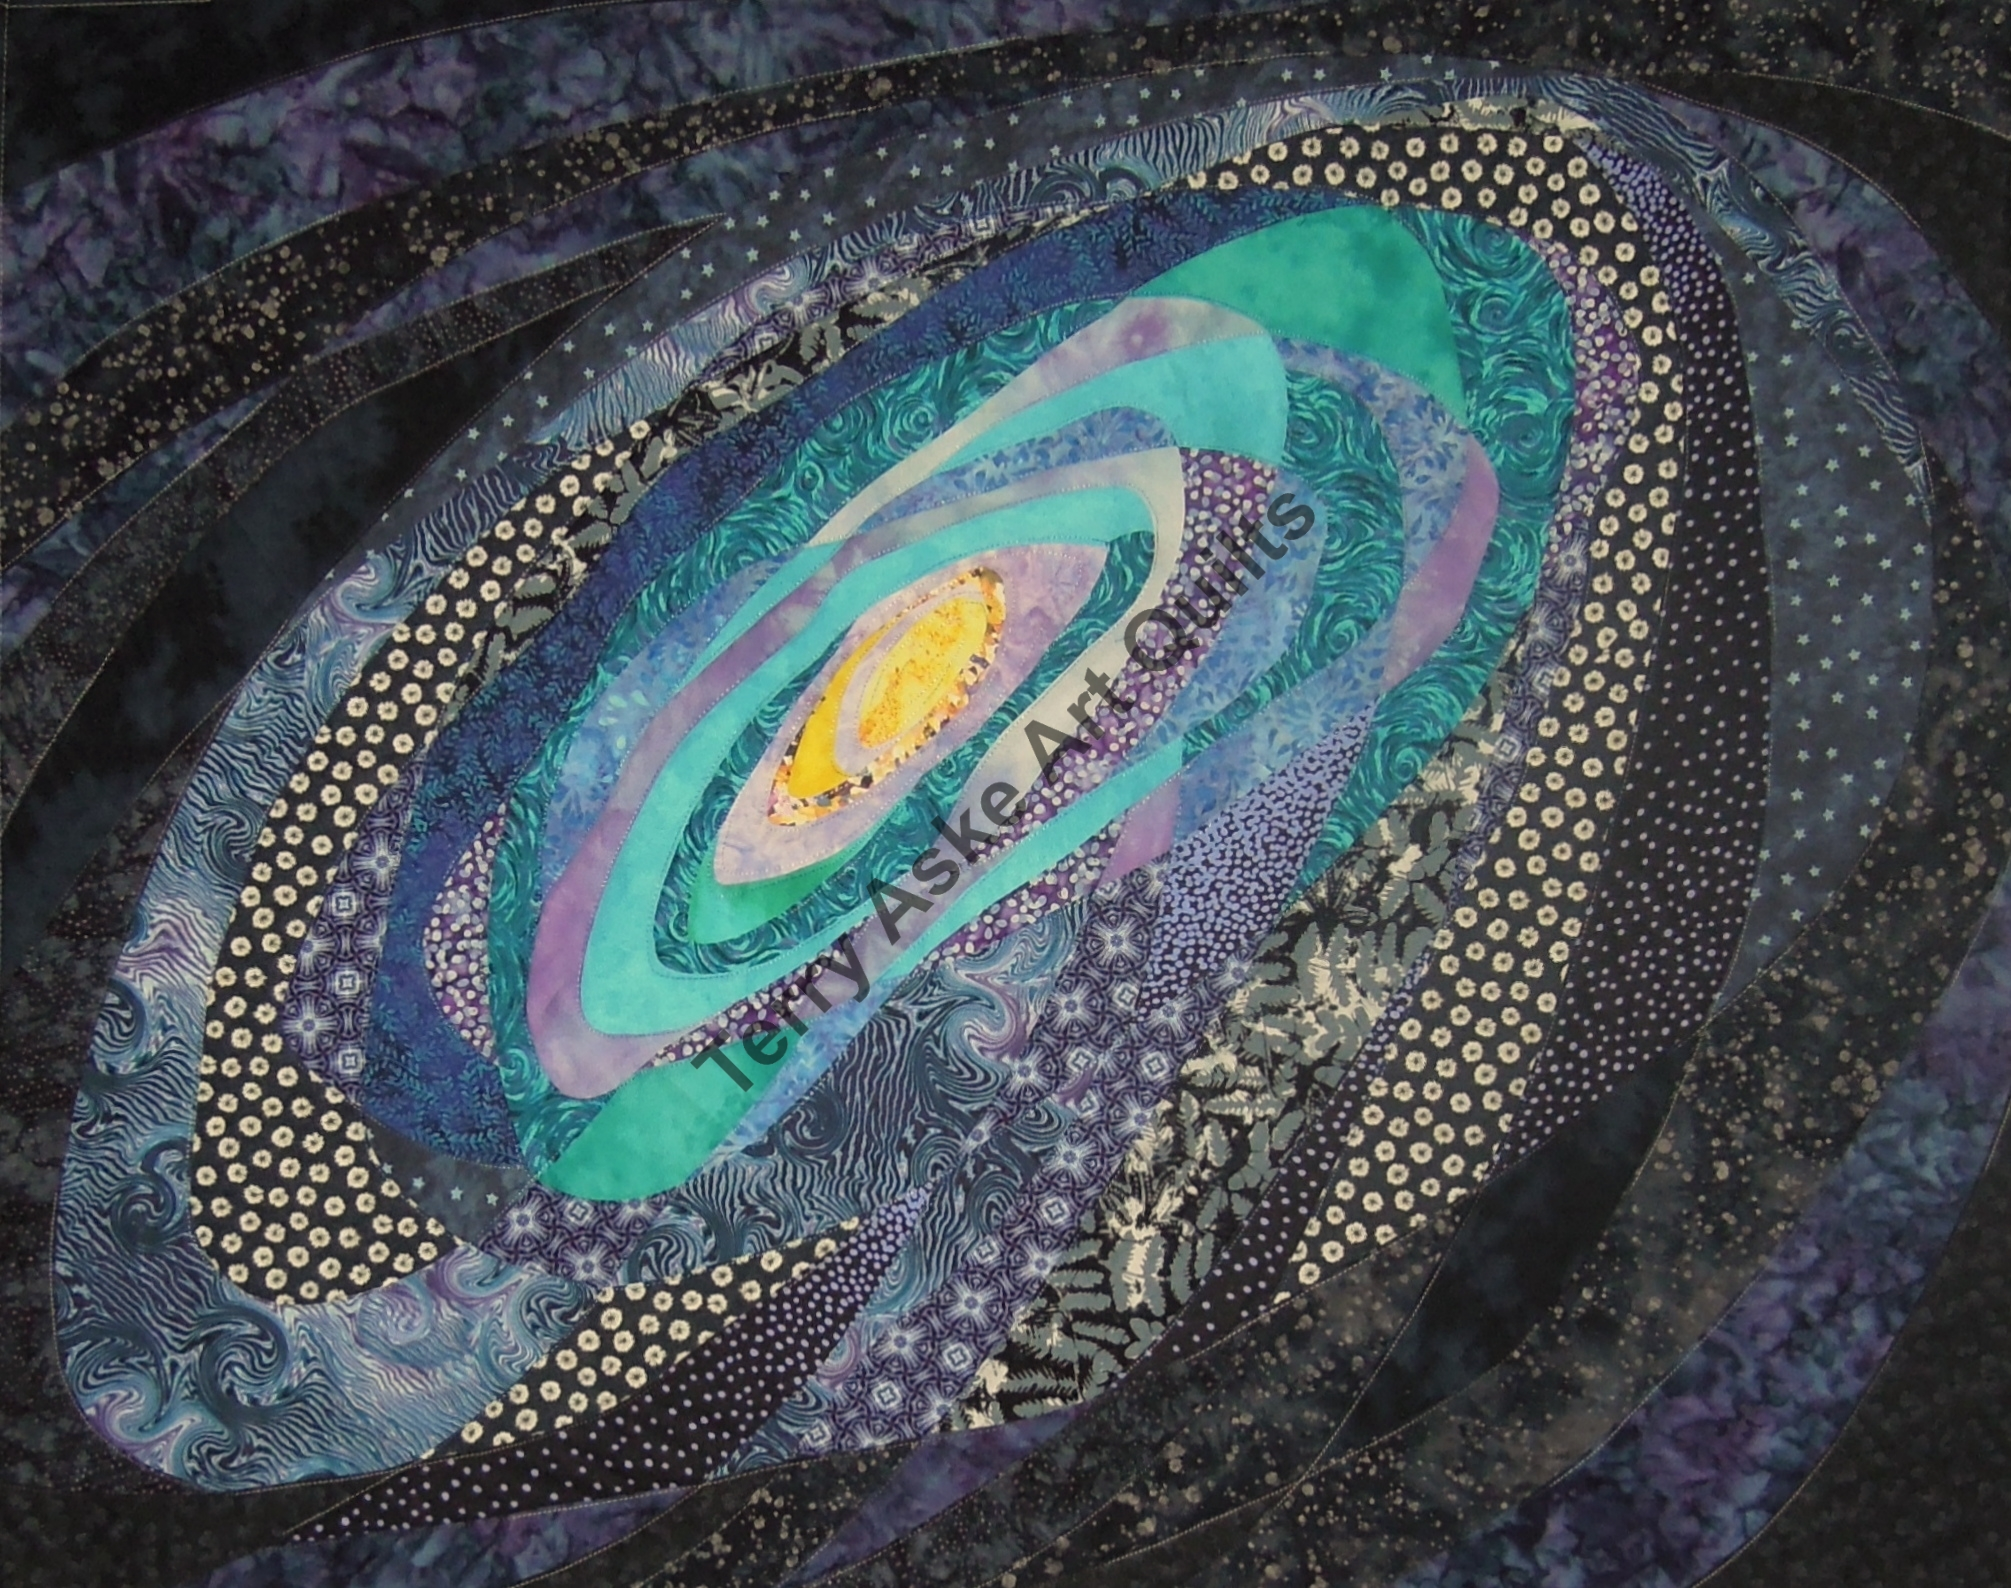 Galaxy quilt start to finish terry aske for Galaxy quilt fabric